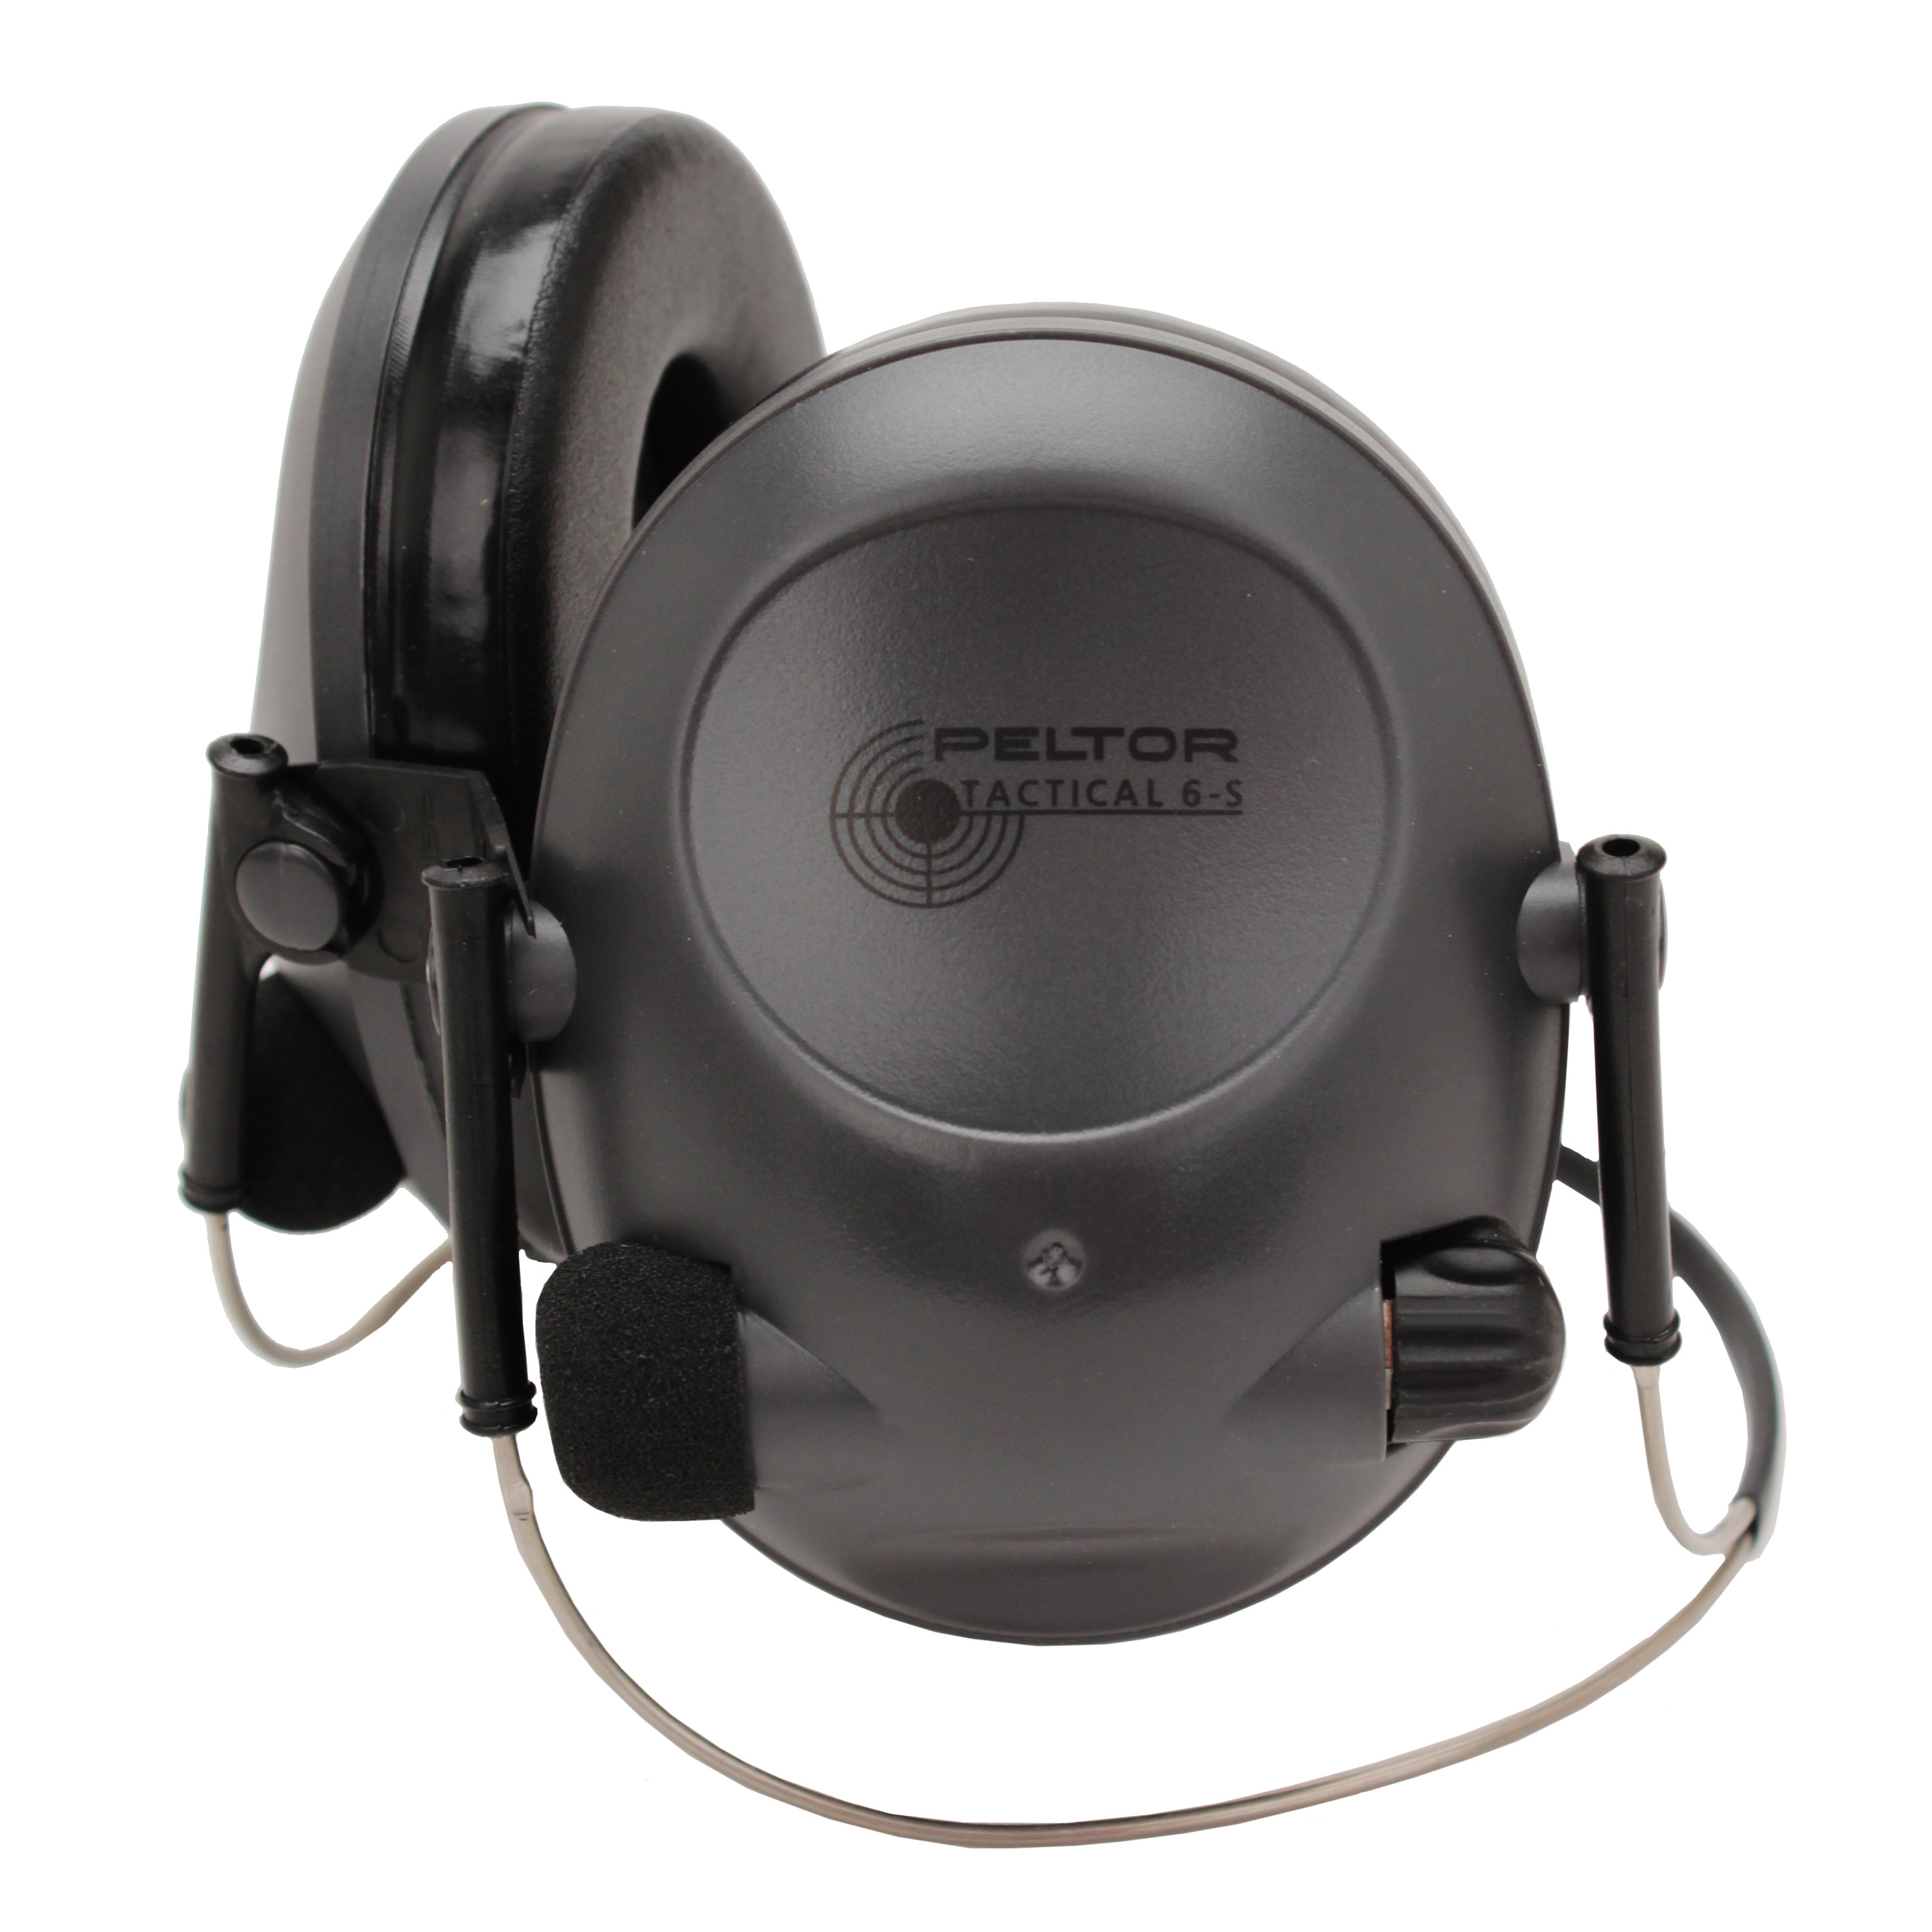 3M Peltor Tactical 6S Behind the Head Electronic Earmuff Hearing Protection - 97043